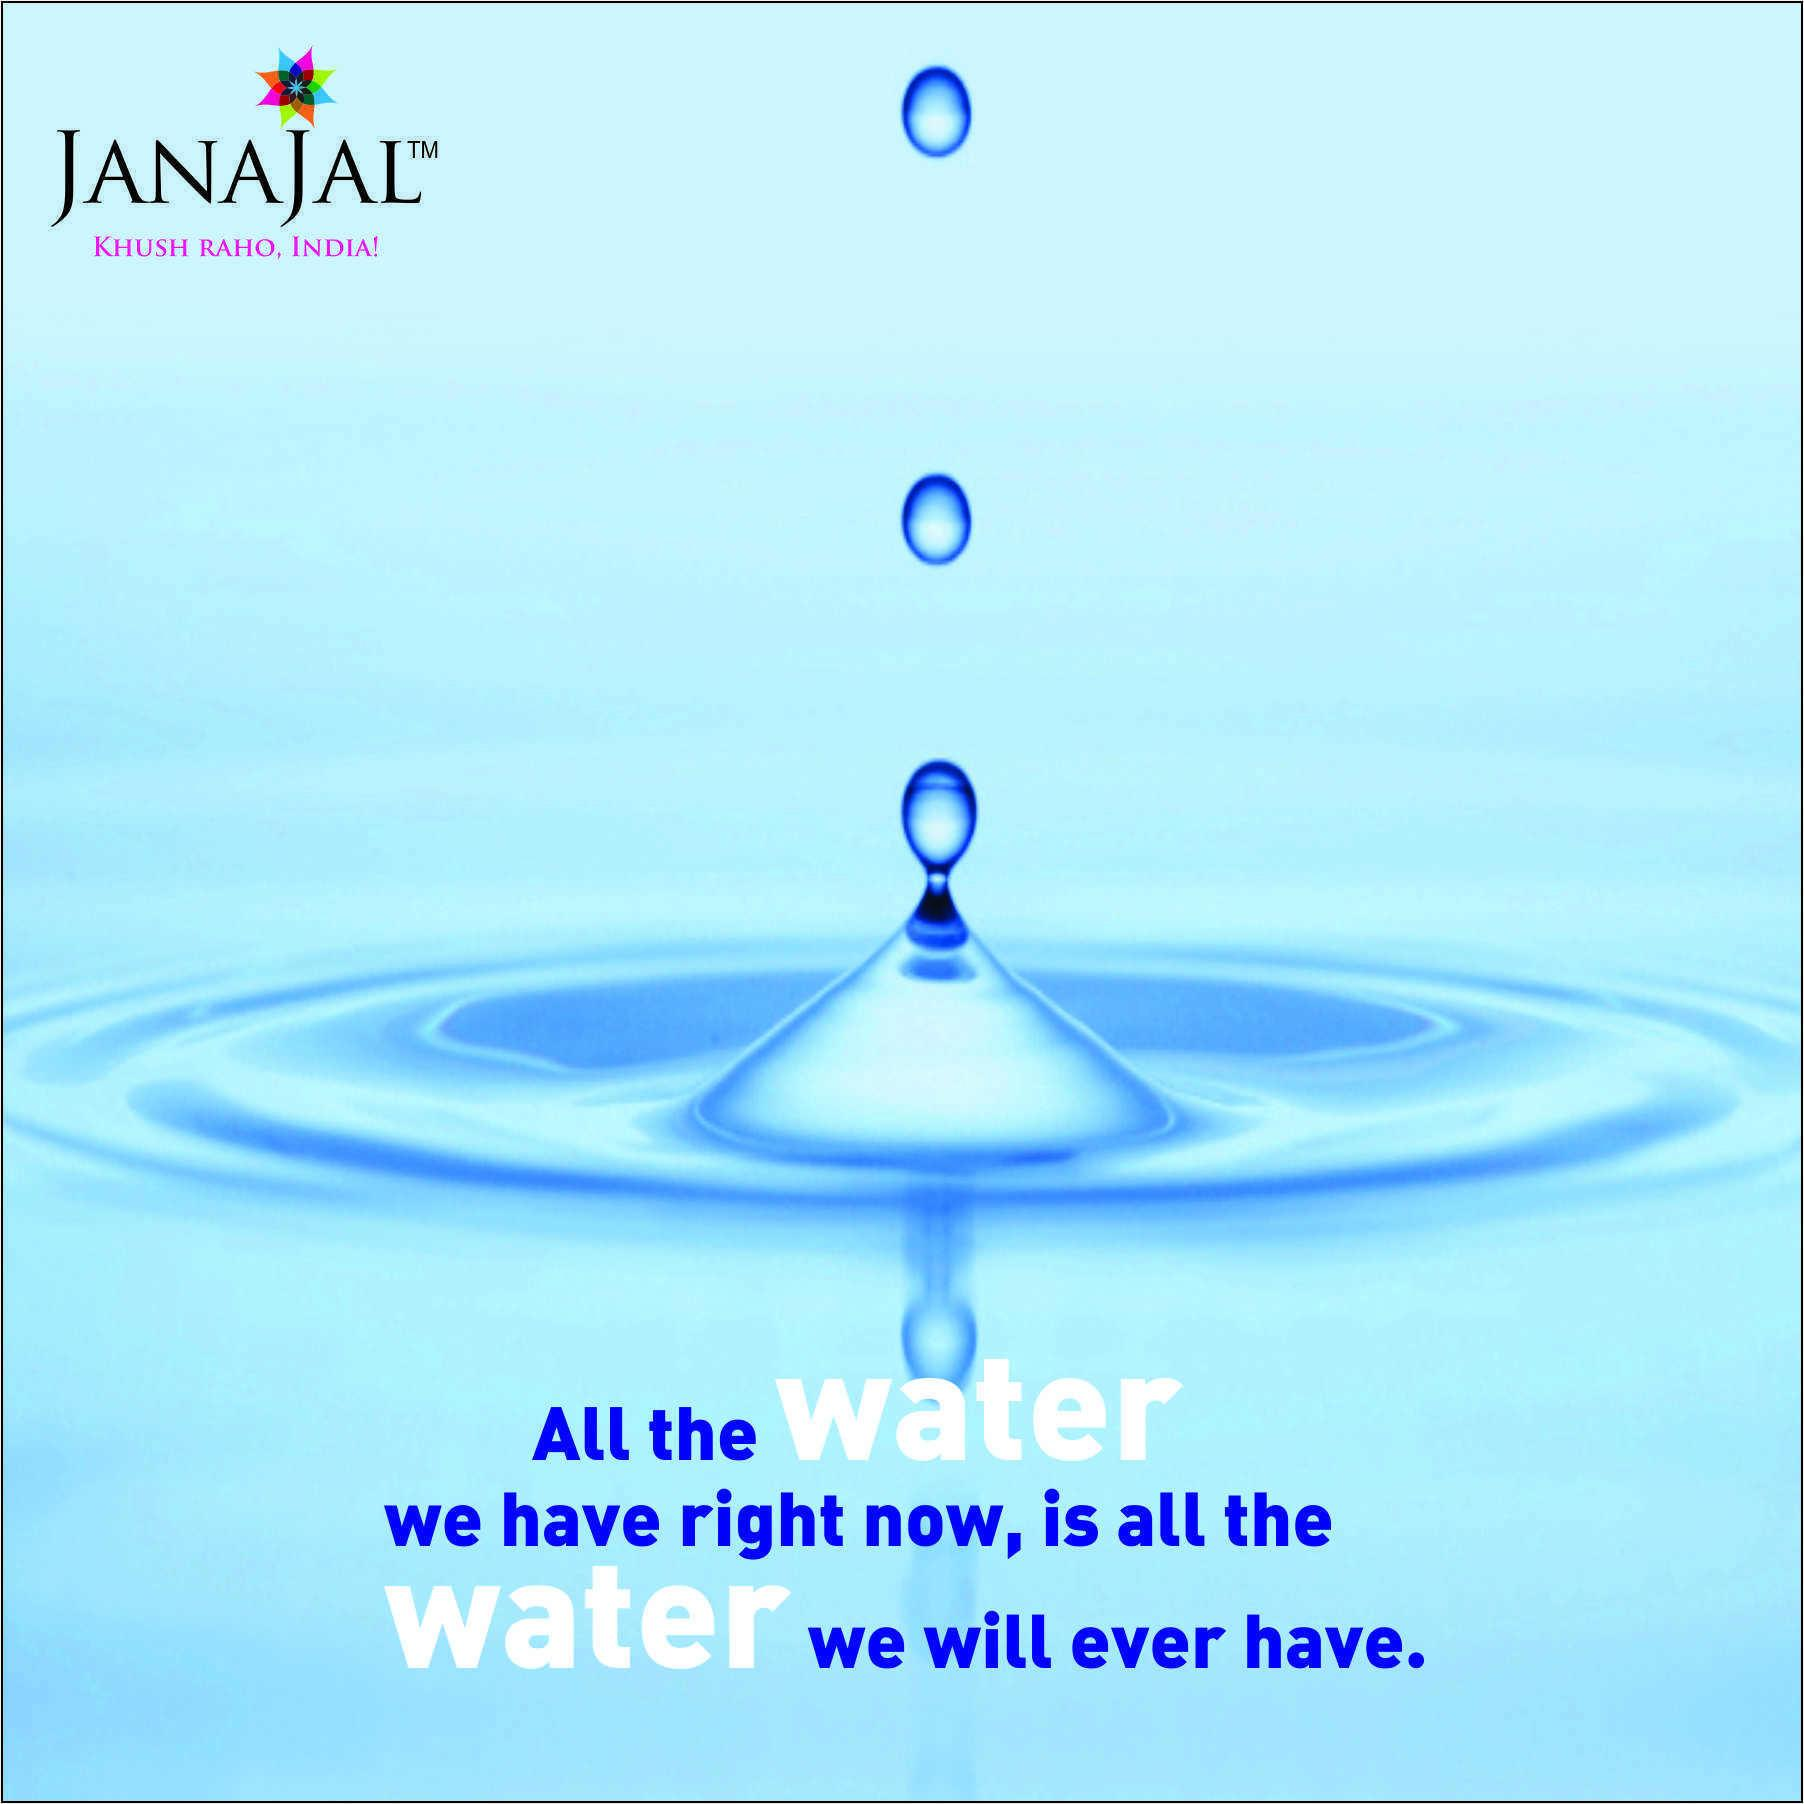 Bringing Affordable Drinking Water to the Under Served and Rural Communities of India